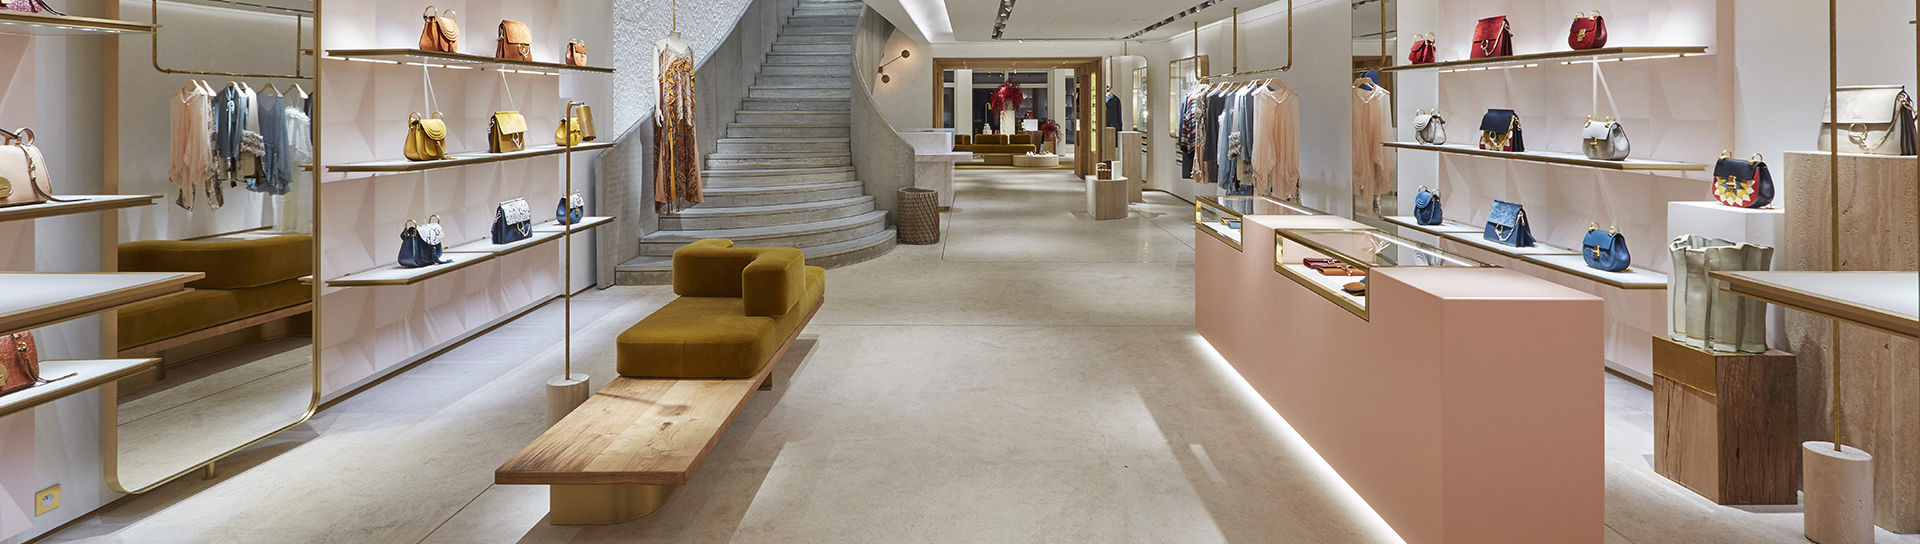 Chloe Amsterdam Boutique Locator Chloé Official Website